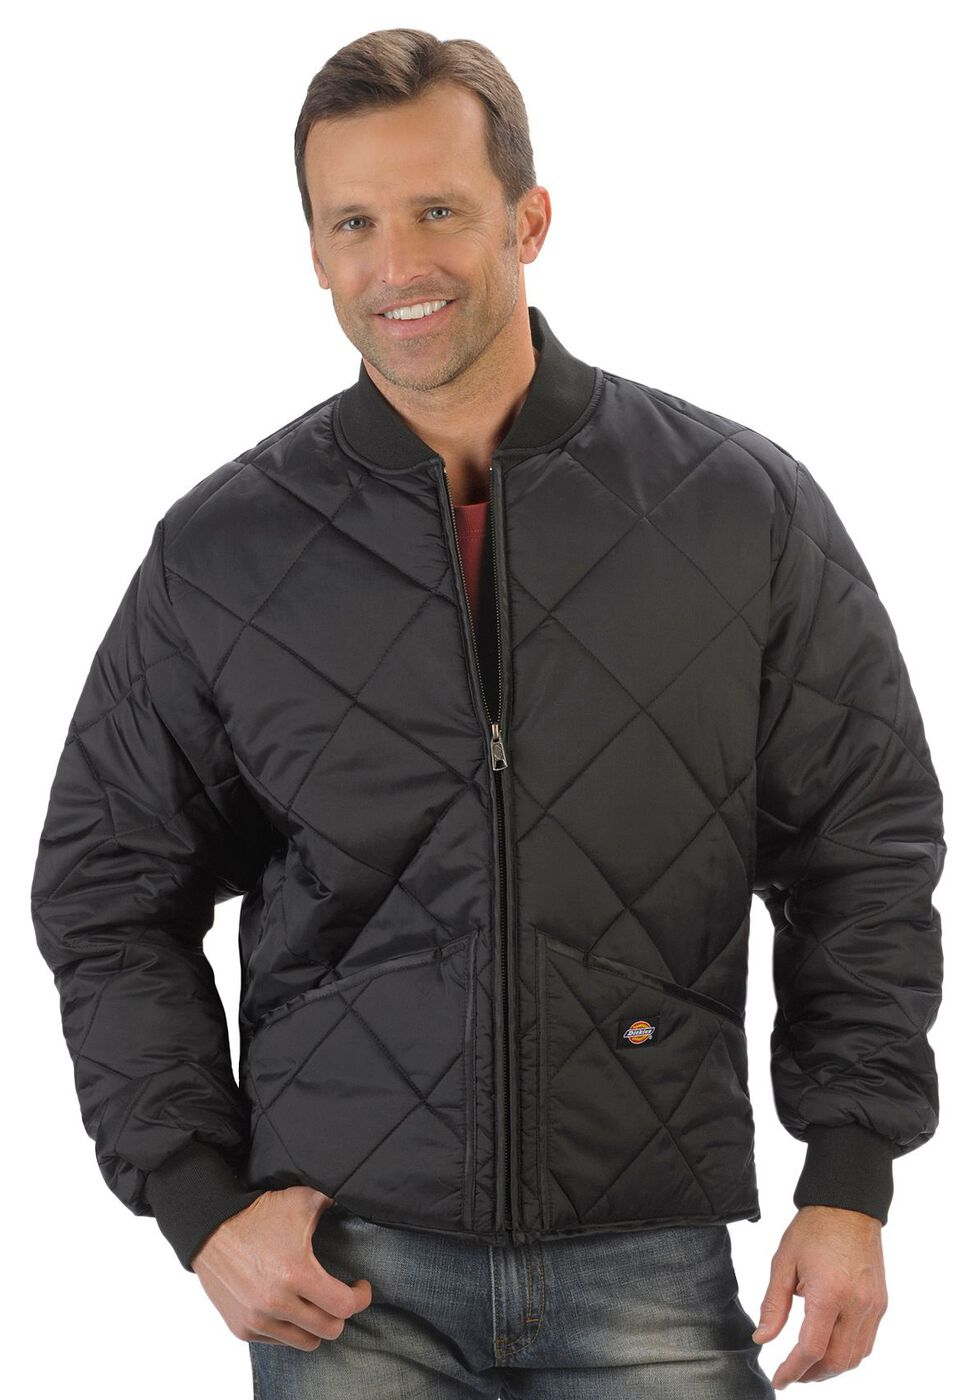 Dickies Diamond Quilted Nylon Work Jacket - Big & Tall, Black, hi-res